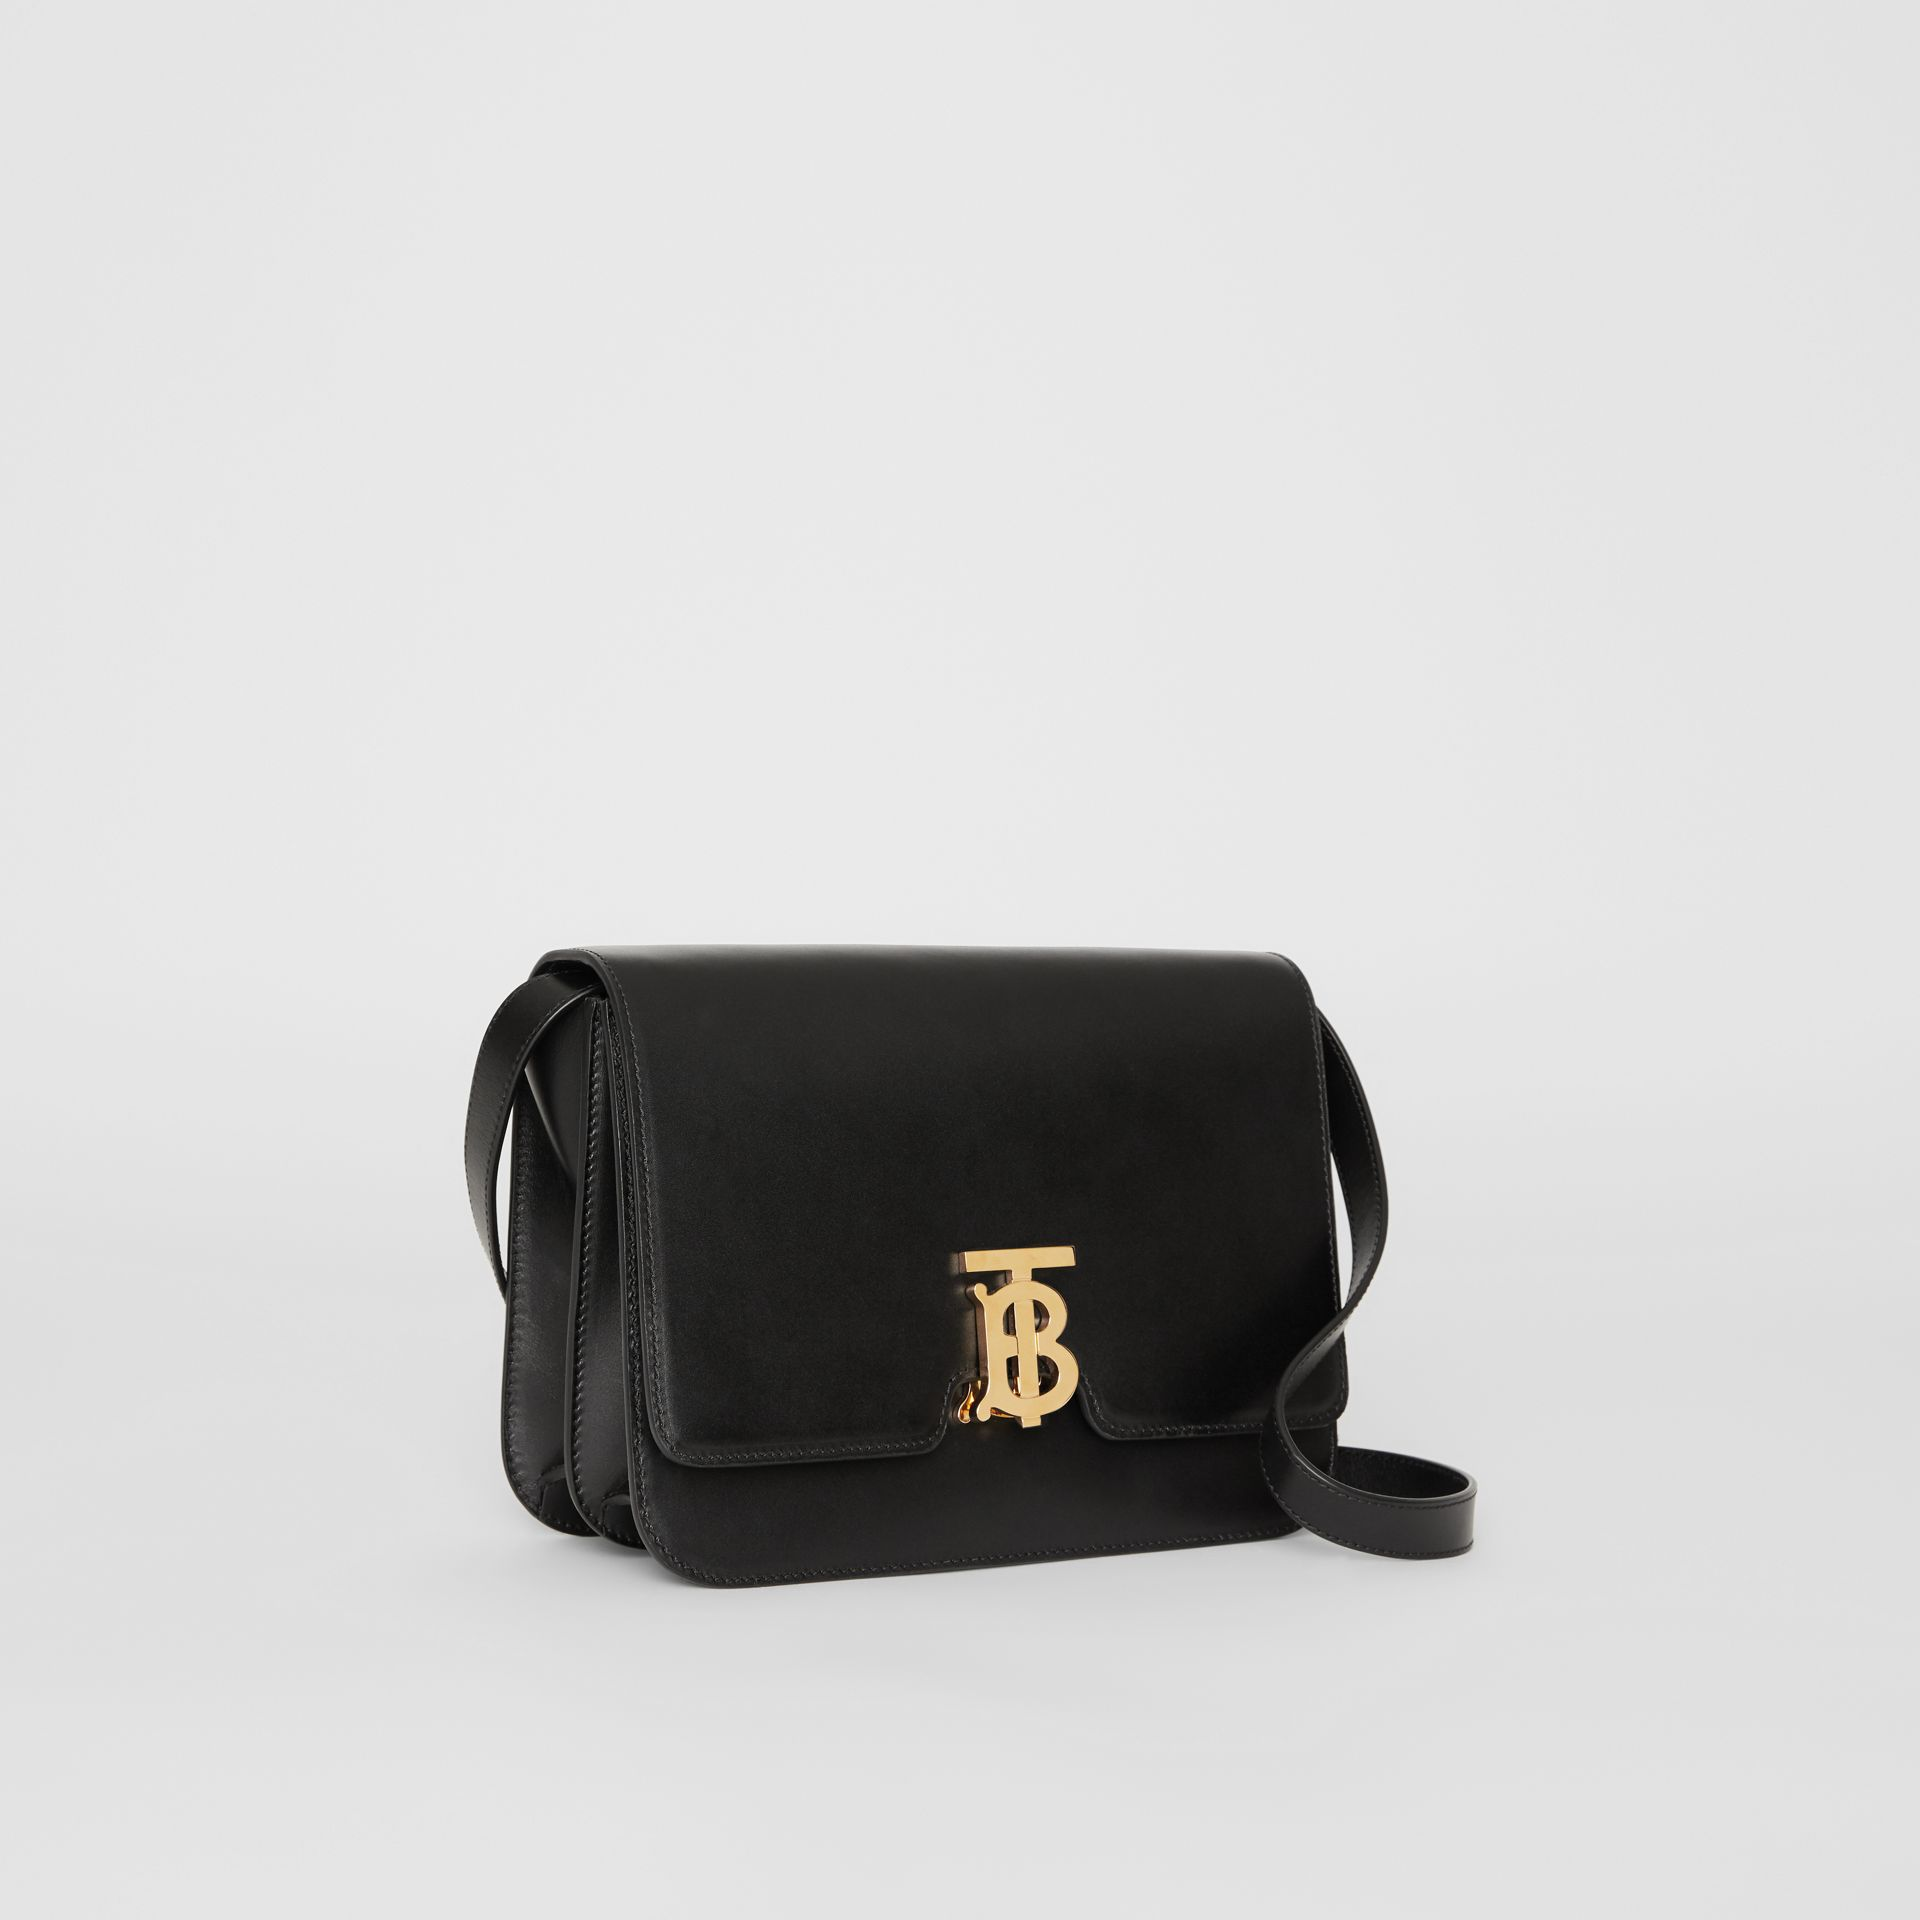 Medium Leather TB Bag in Black - Women | Burberry - gallery image 6